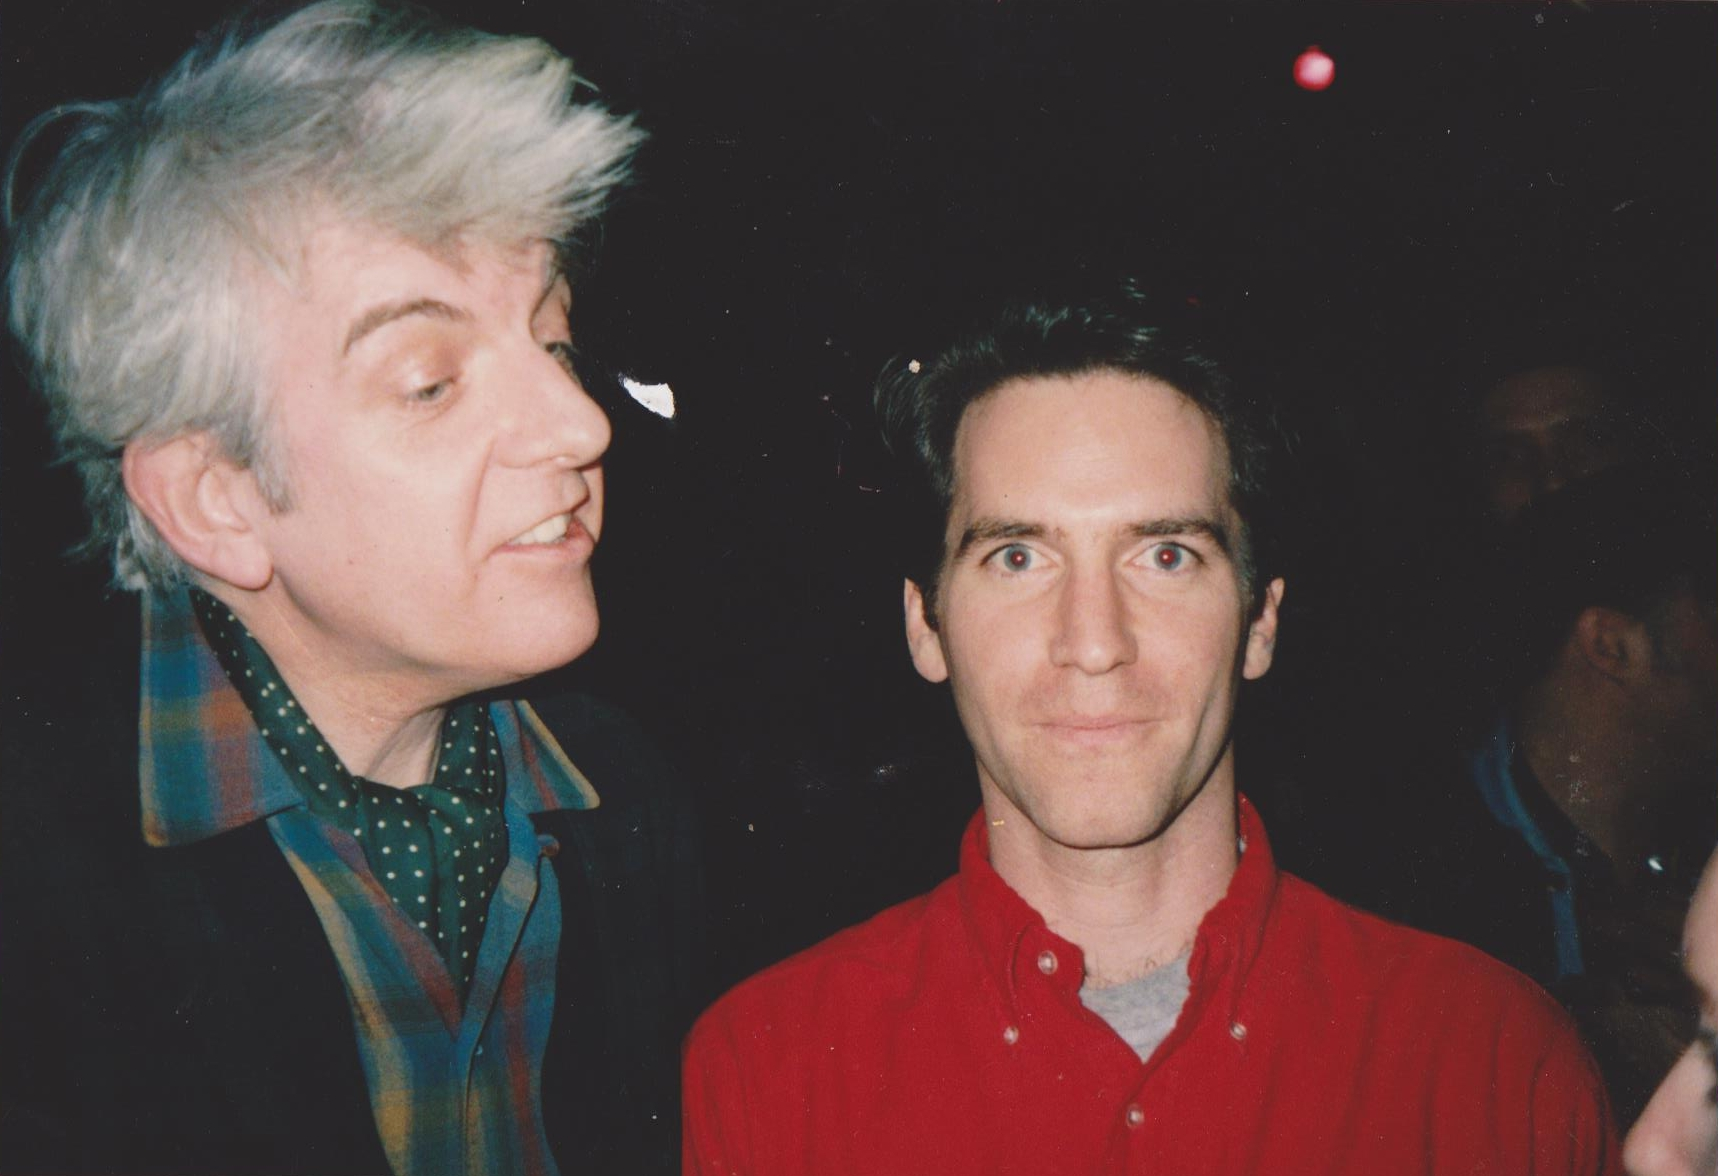 Nick Lowe and Michael Shelley 10 years ago